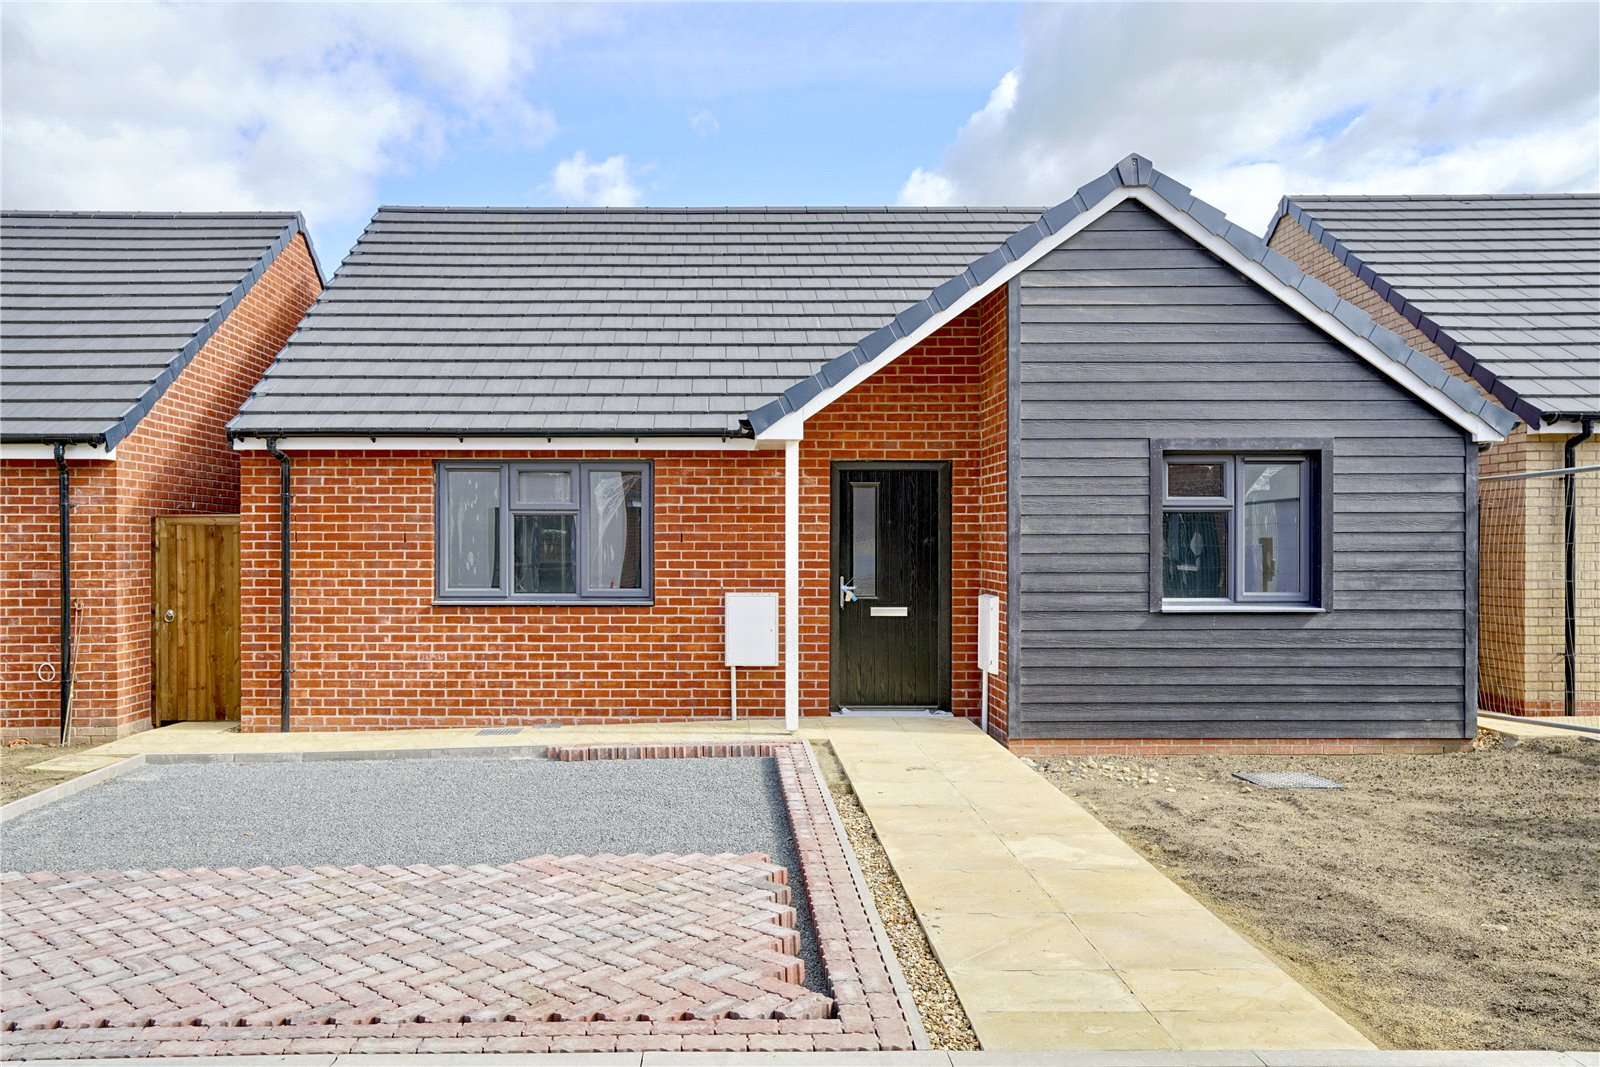 3 bed bungalow for sale in Whittlesey, PE7 1RU, PE7